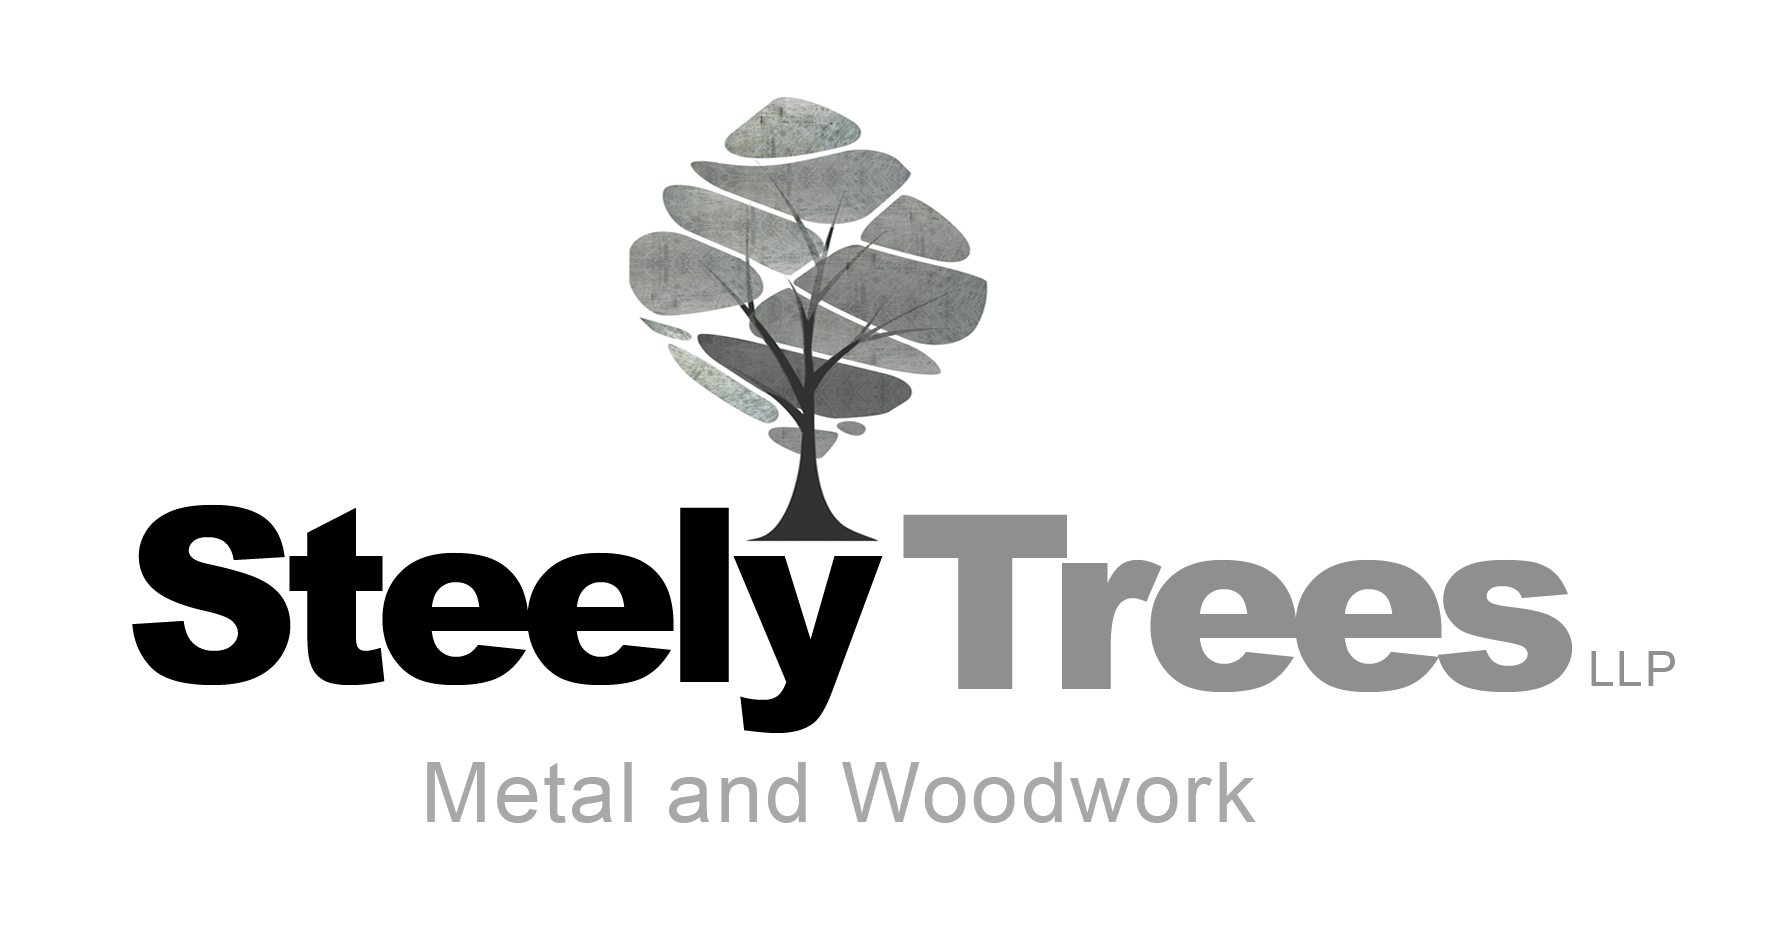 Steely Trees LLP logo